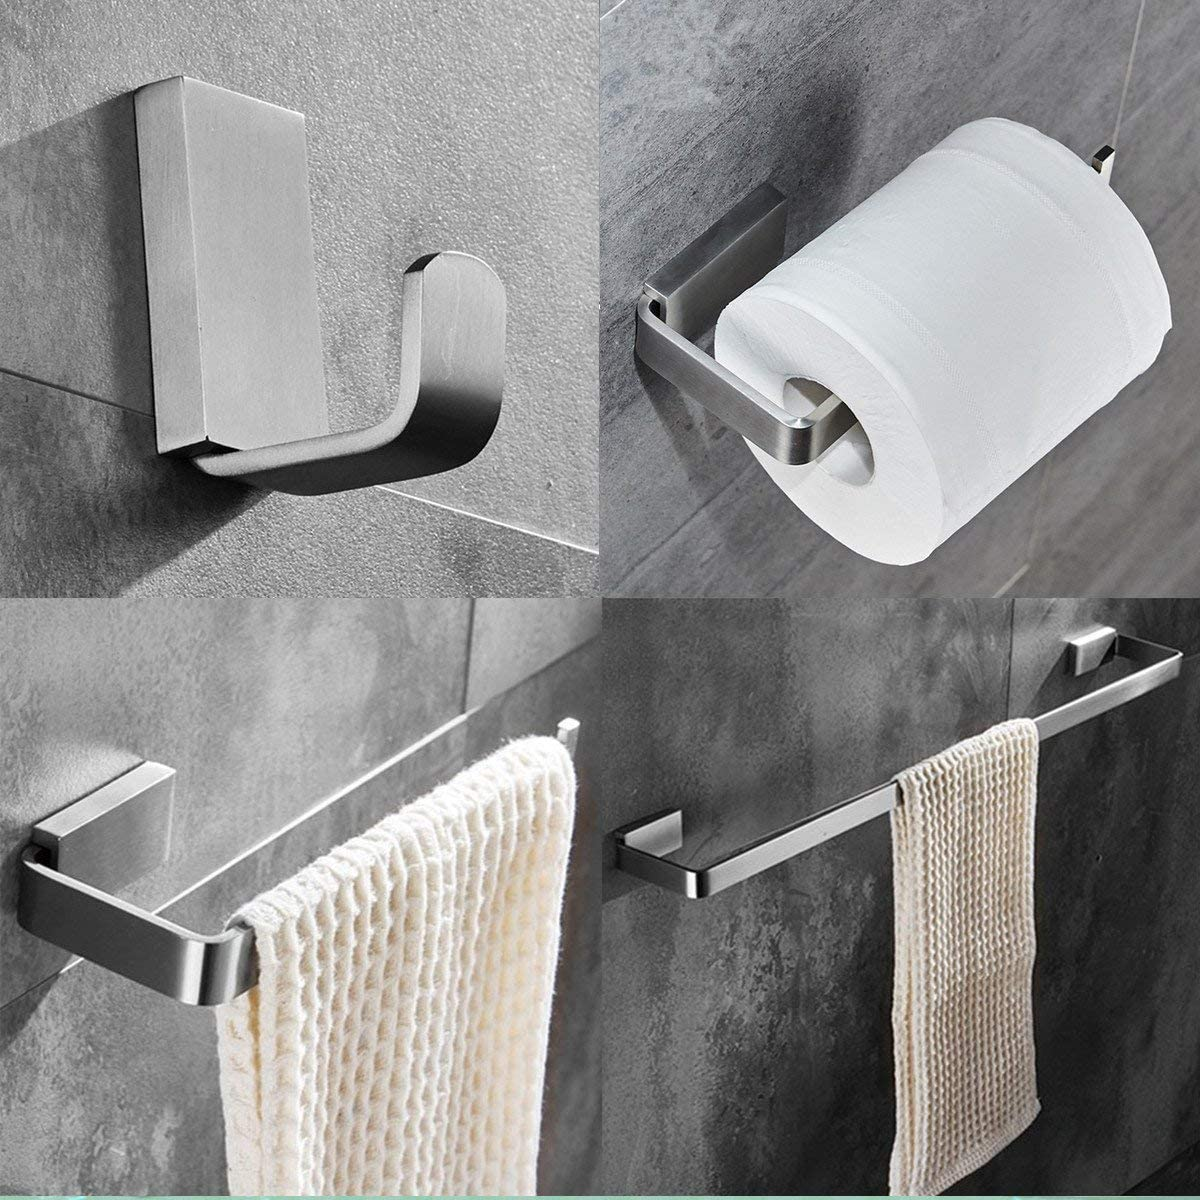 ELLO&ALLO Brushed Nickel Bathroom Hardware Set,Stainless Steel Towel Bar Wall Mounted Bath Accessories Set: Home & Kitchen